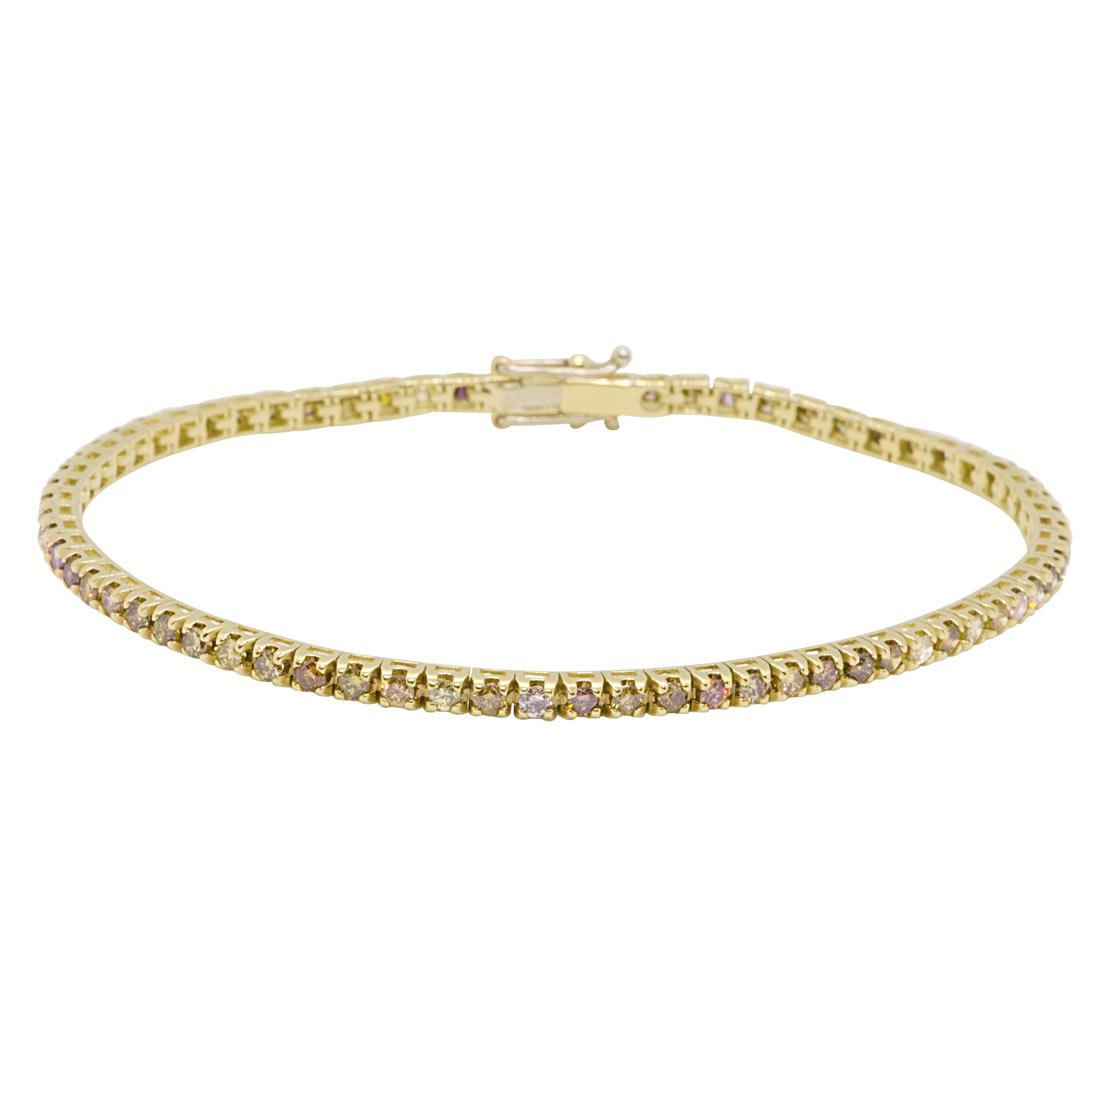 Bracciale tennis in oro giallo con diamanti 2,25 ct - ORO&CO